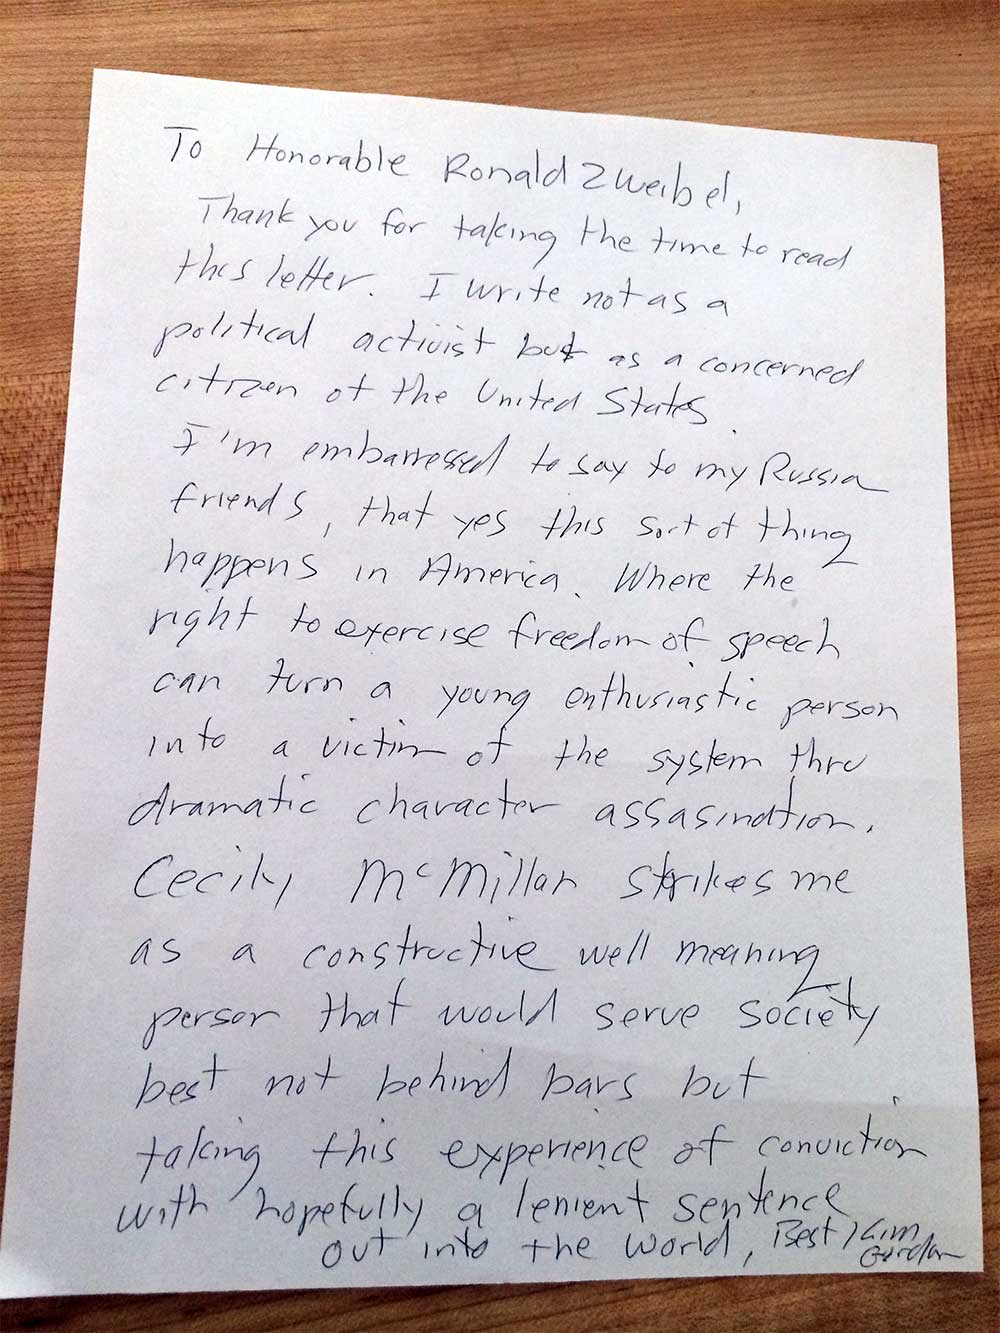 Kim Gordon Letter of Support for Cecily McMillan